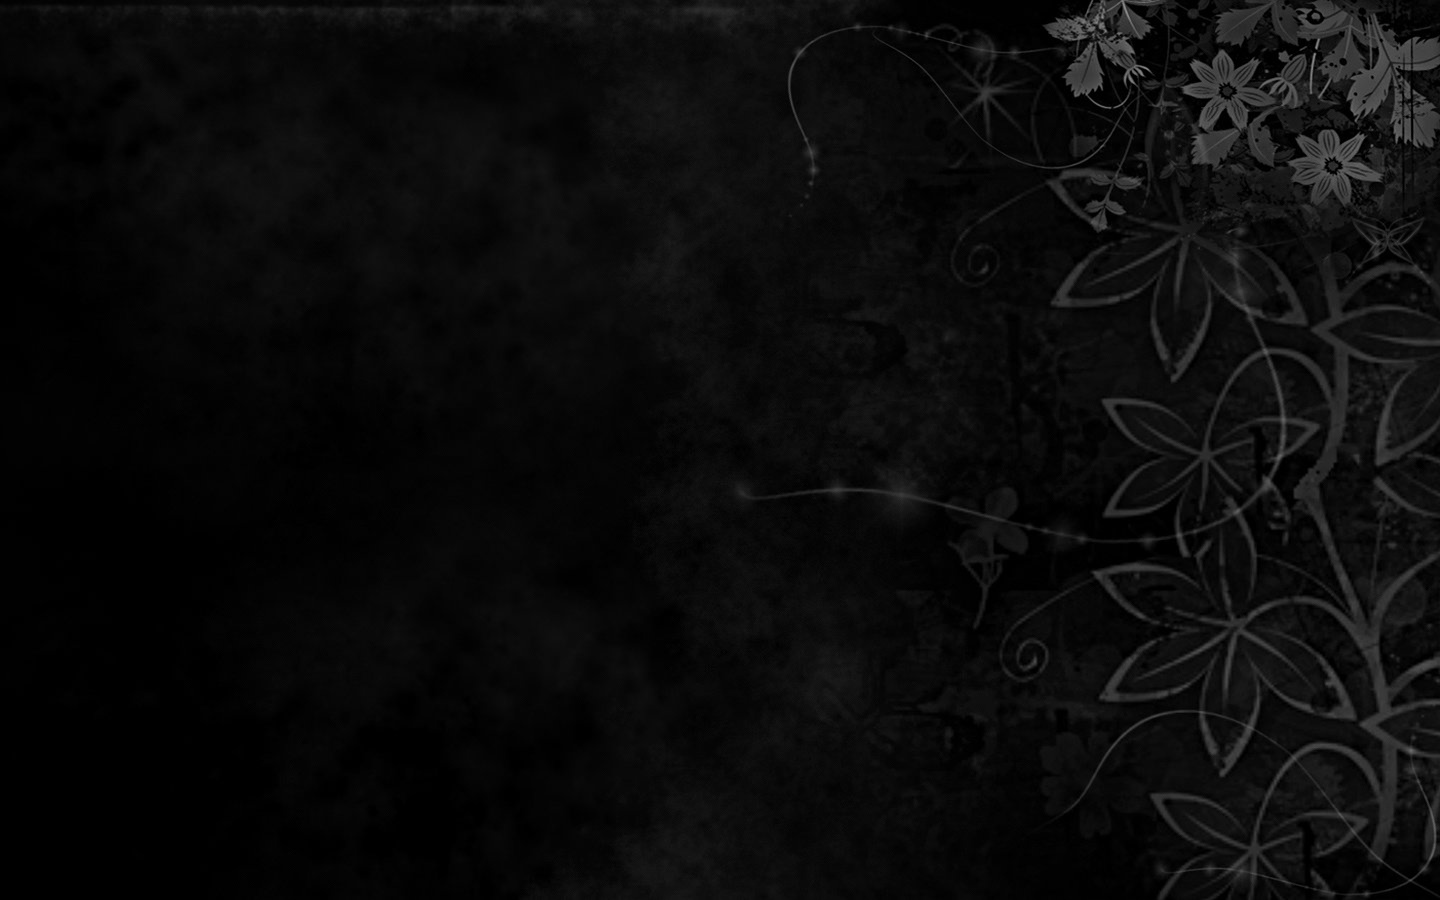 45 Black Wallpaper Android On Wallpapersafari